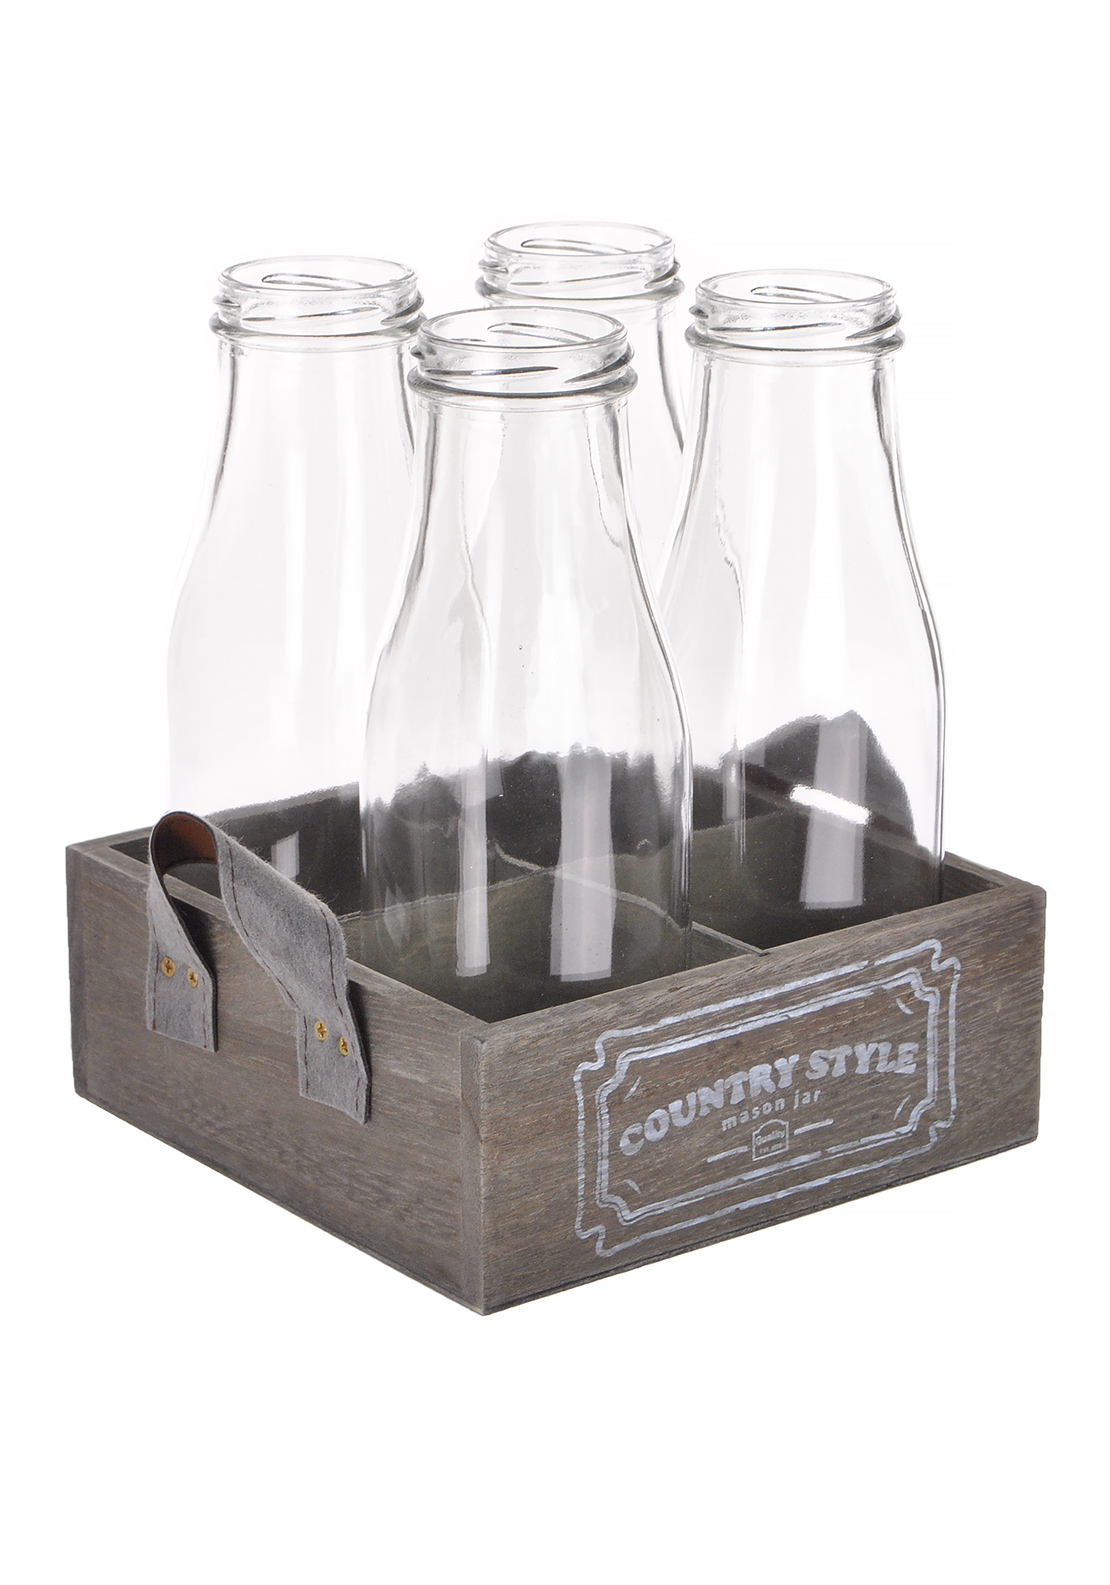 Yorkshire Collection Milk Bottles on Wooden Tray, set of 4